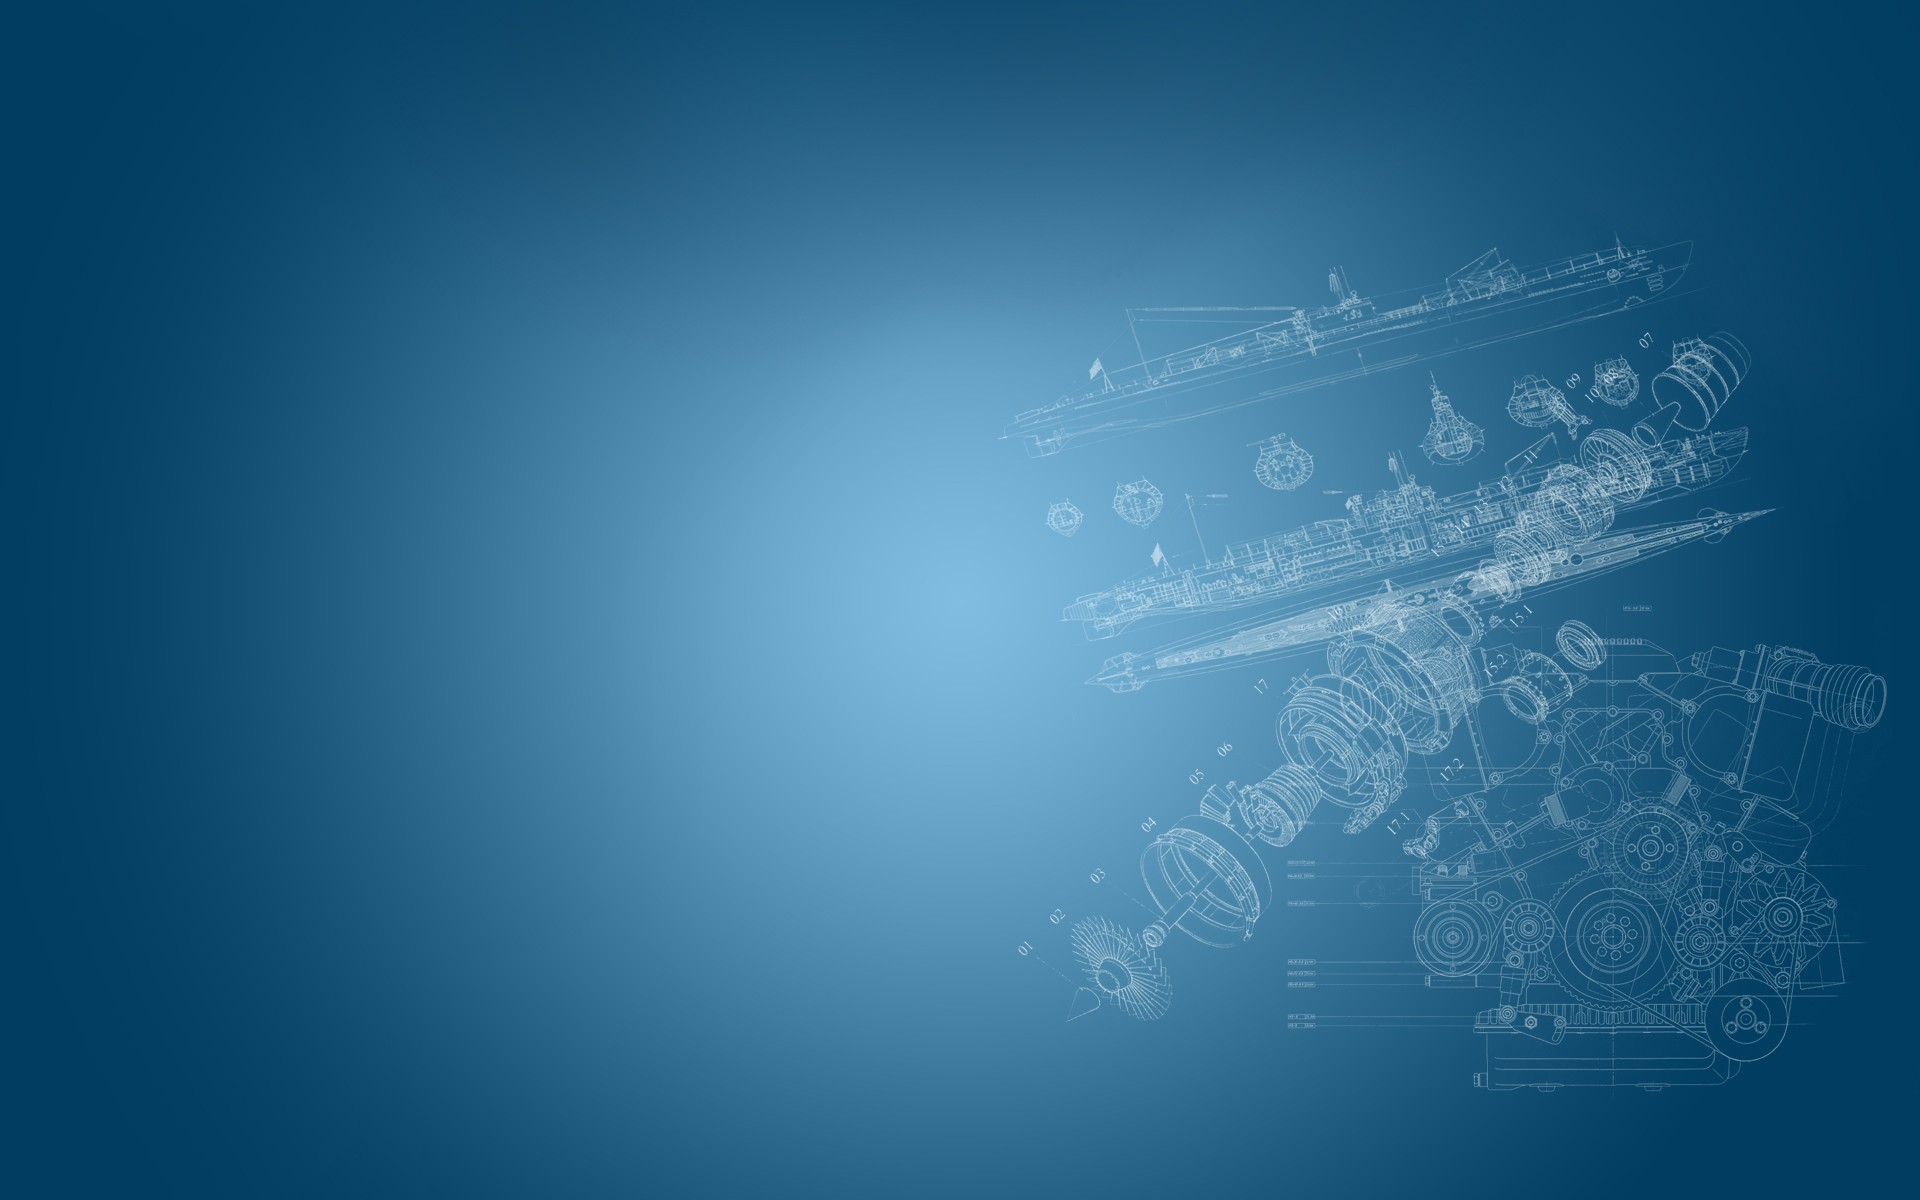 The Coolest Engineering Wallpapers to Spruce up your Desktop 1920x1200